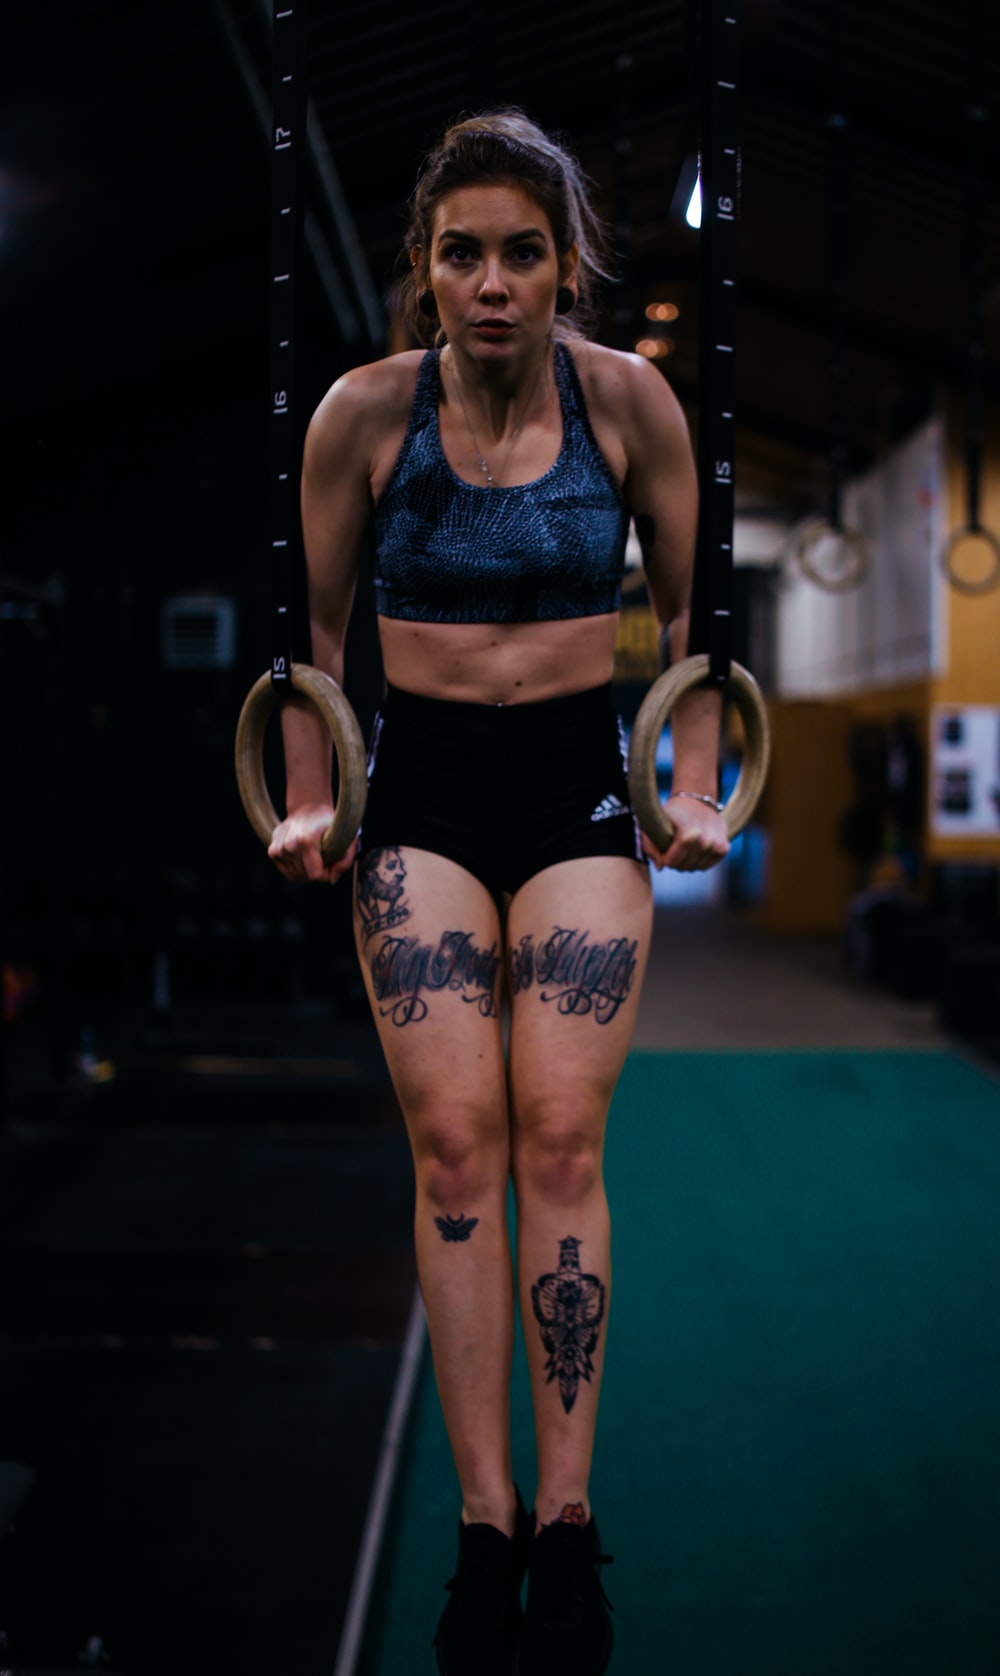 woman doing workout \